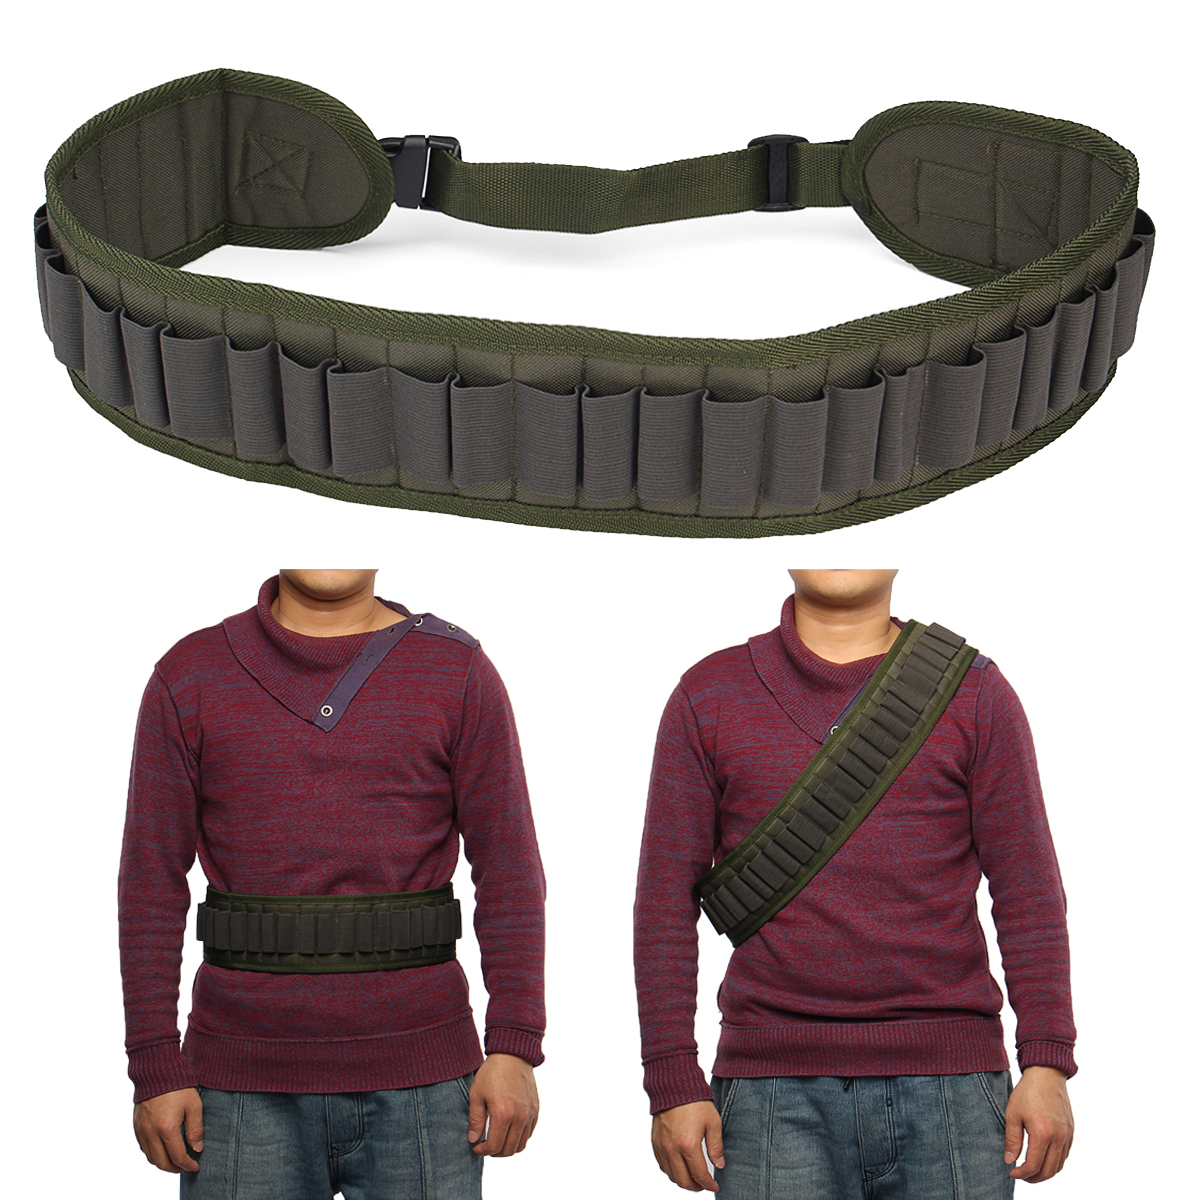 Outdoor 30 Holes Hunting Cartridge Belt Tactical Shooti